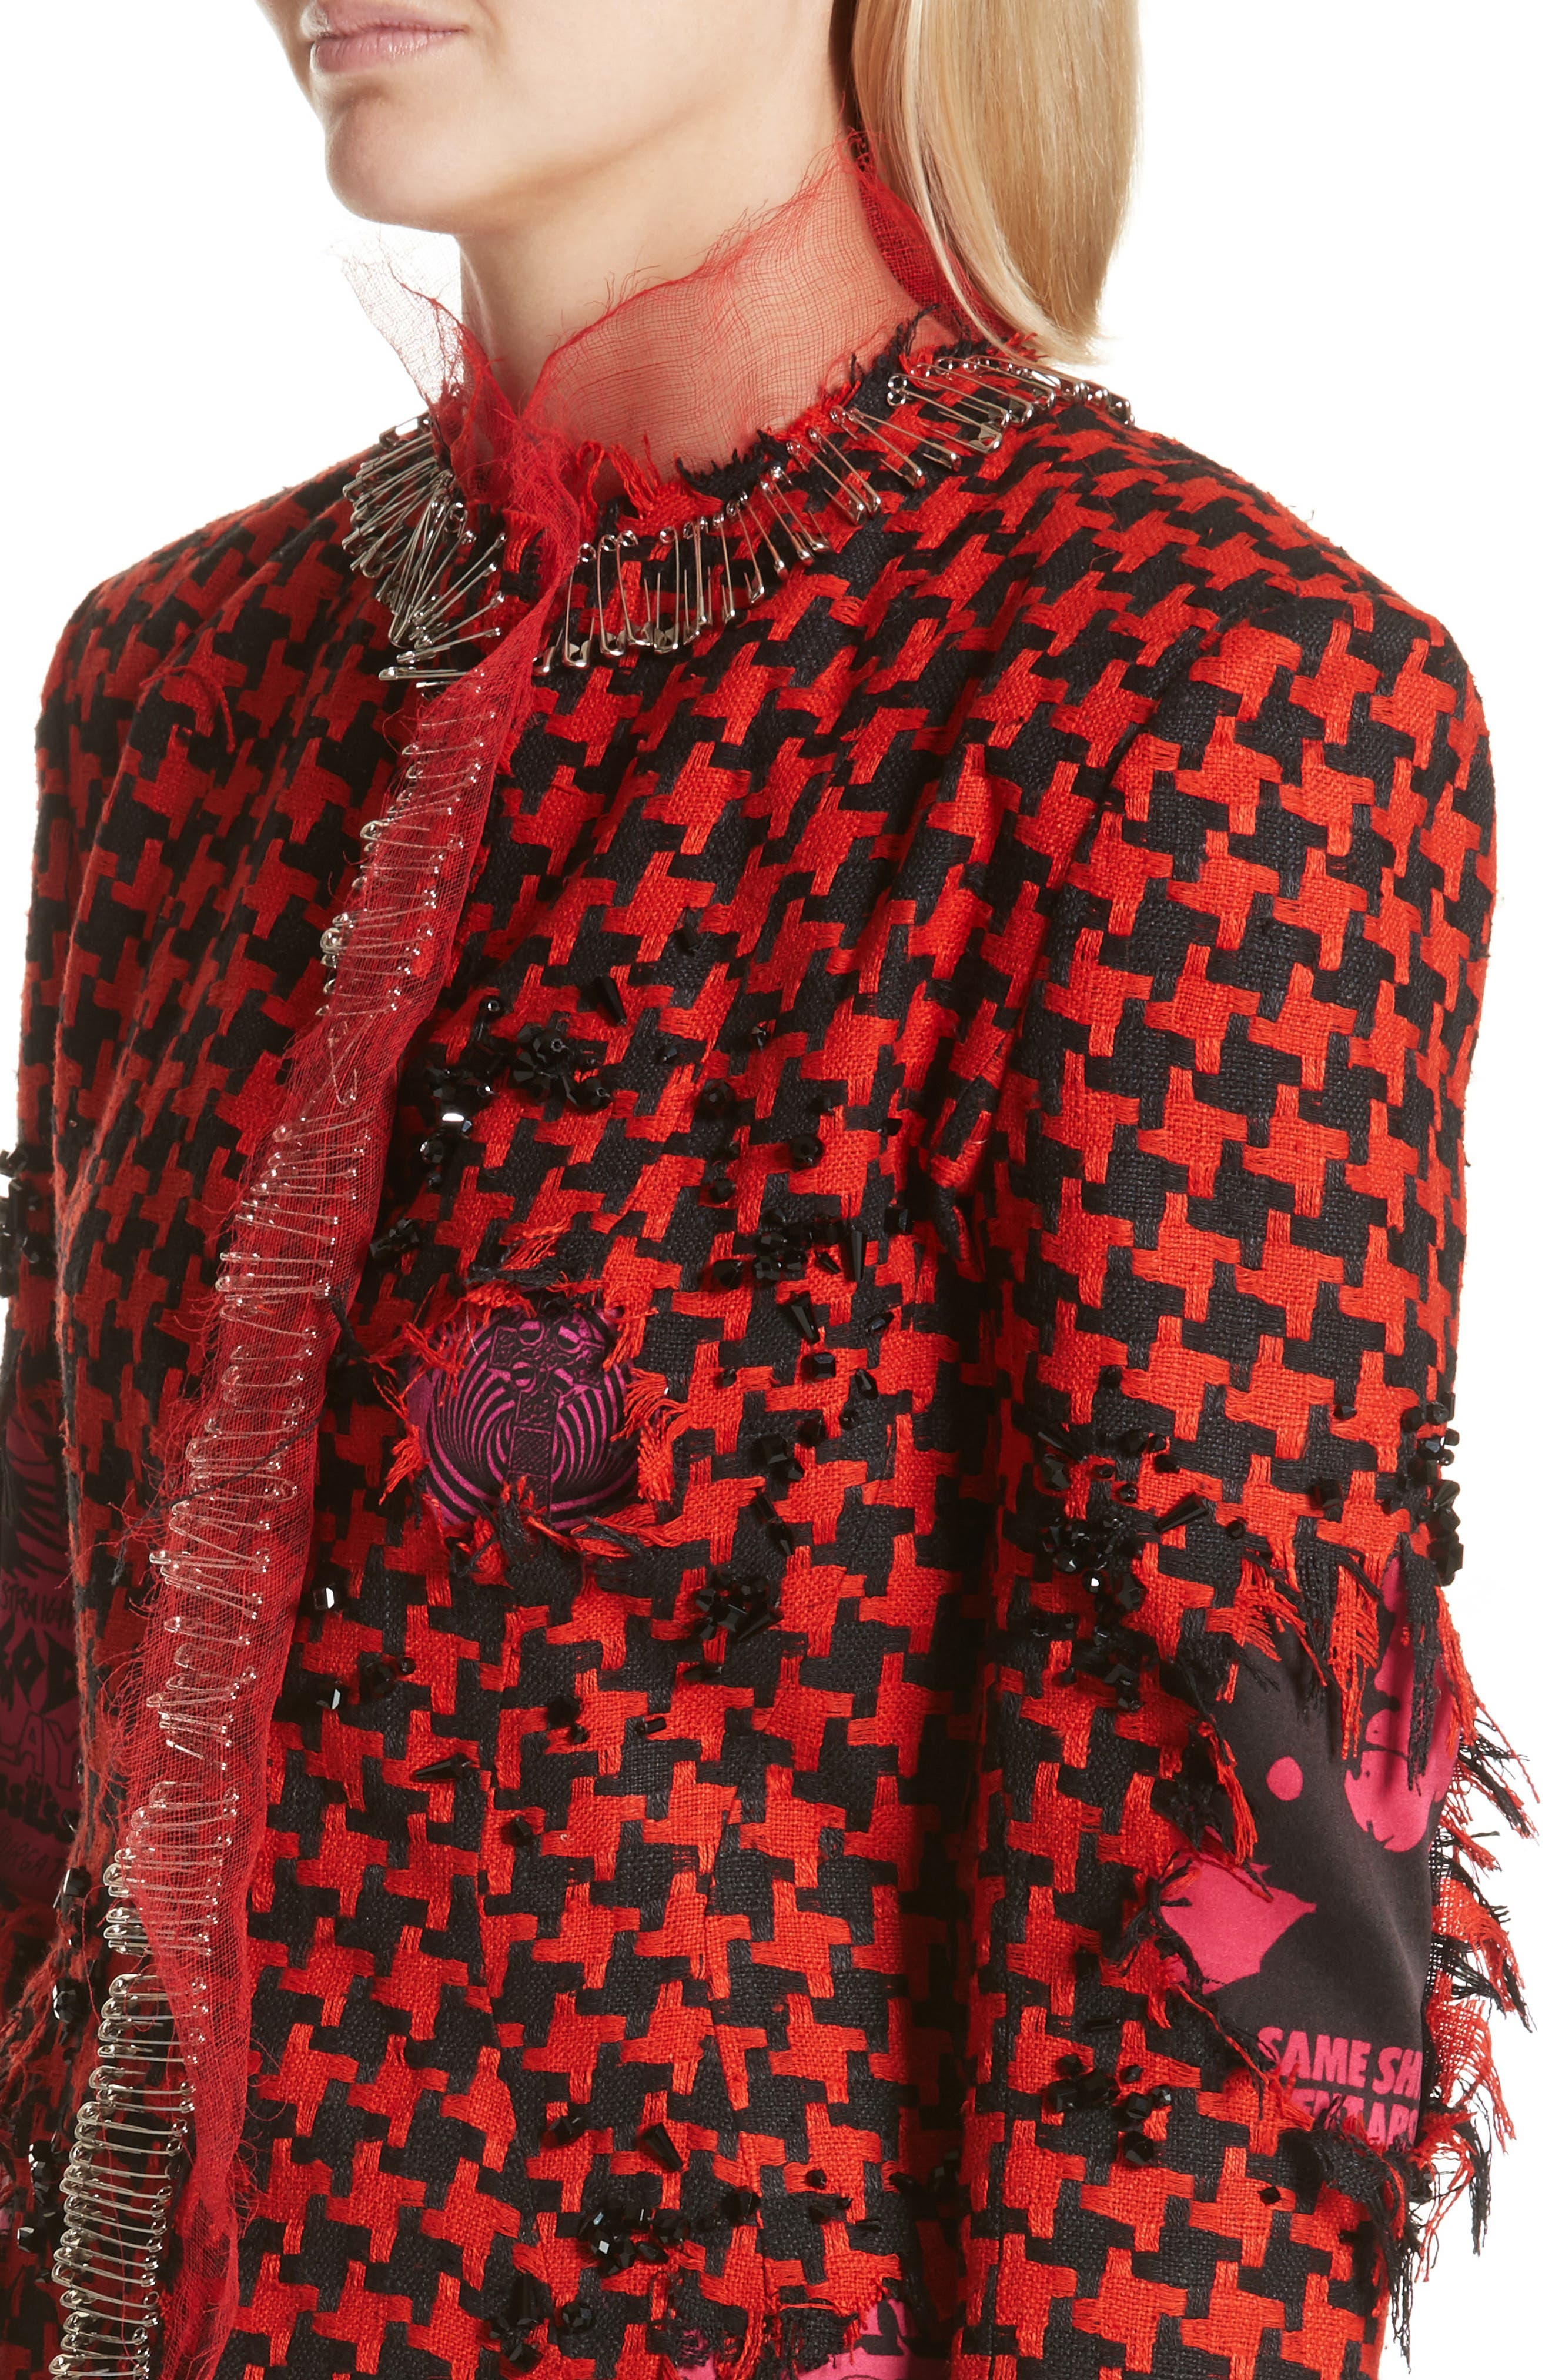 Prime Minister Houndstooth Wool Jacket,                             Alternate thumbnail 4, color,                             Red